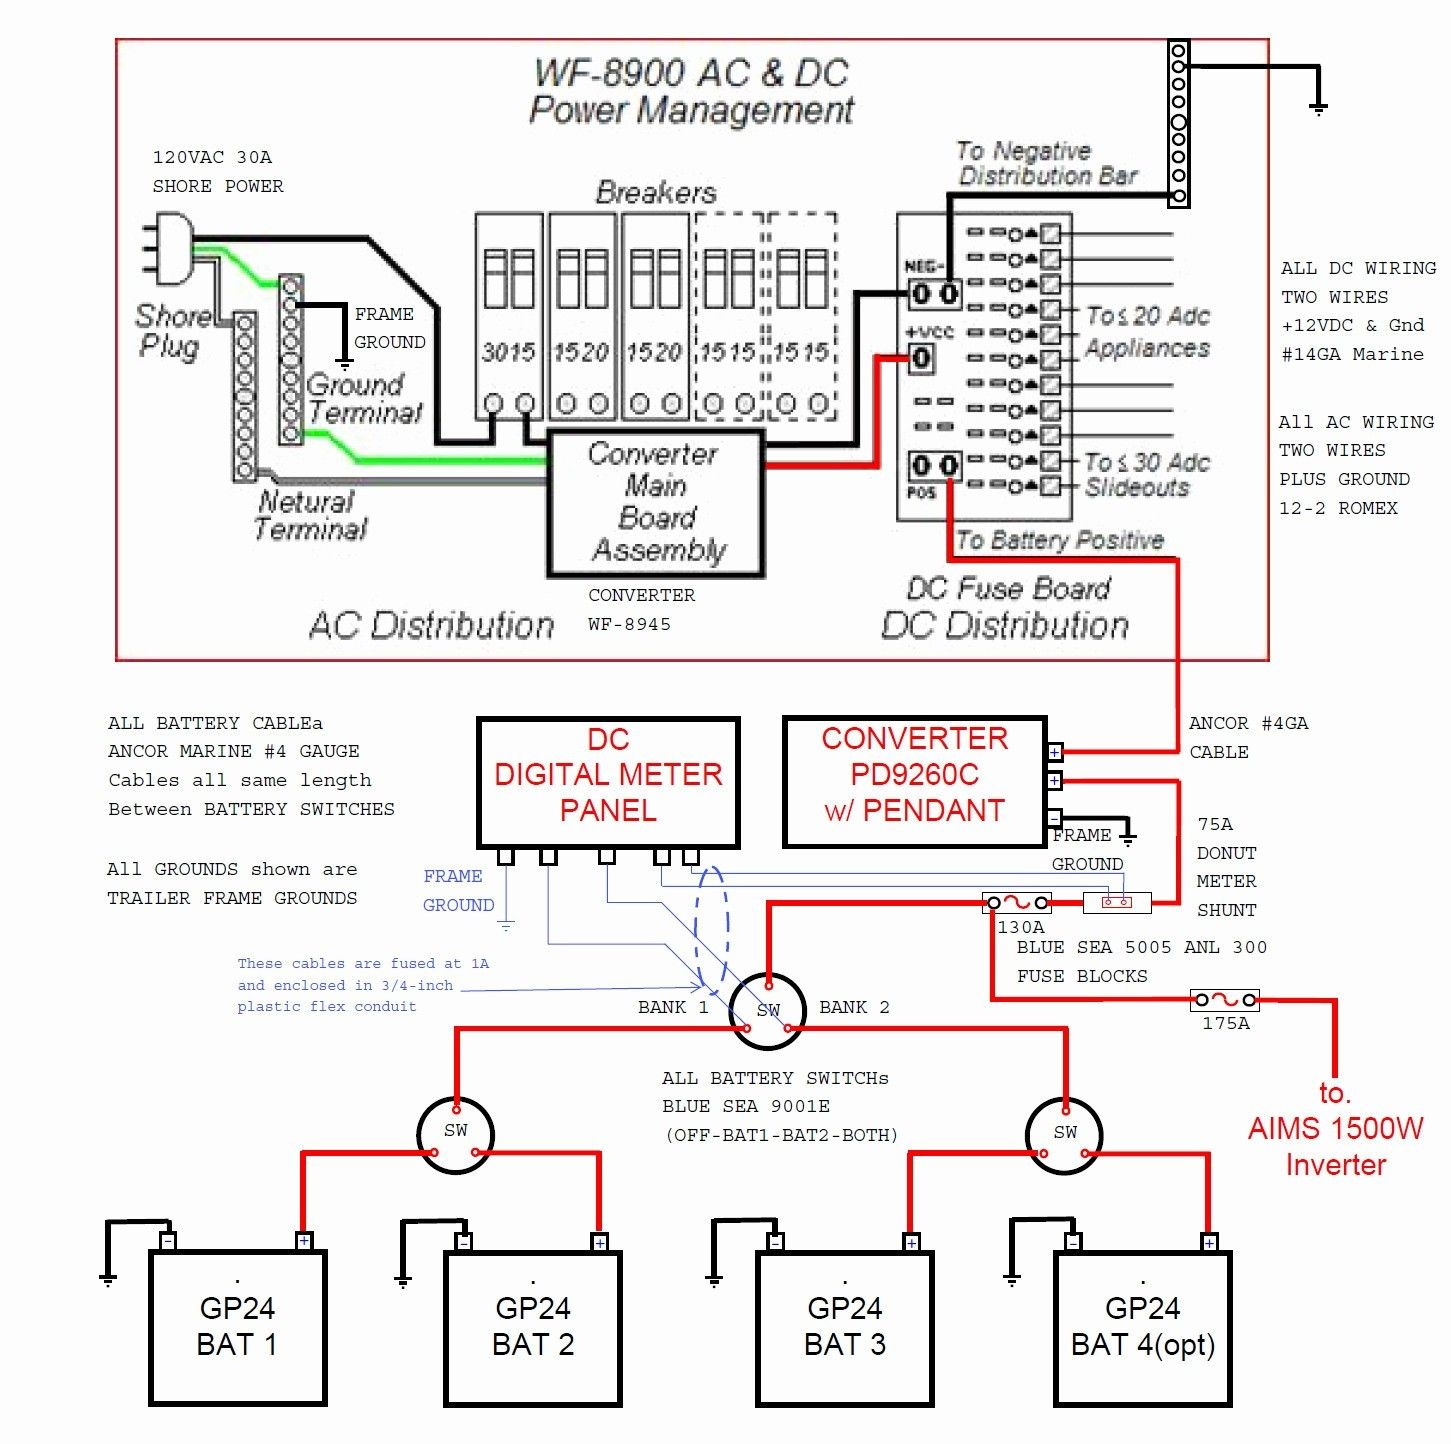 50a wiring diagram wiring diagram data val 250v schematic wiring [ 1451 x 1444 Pixel ]